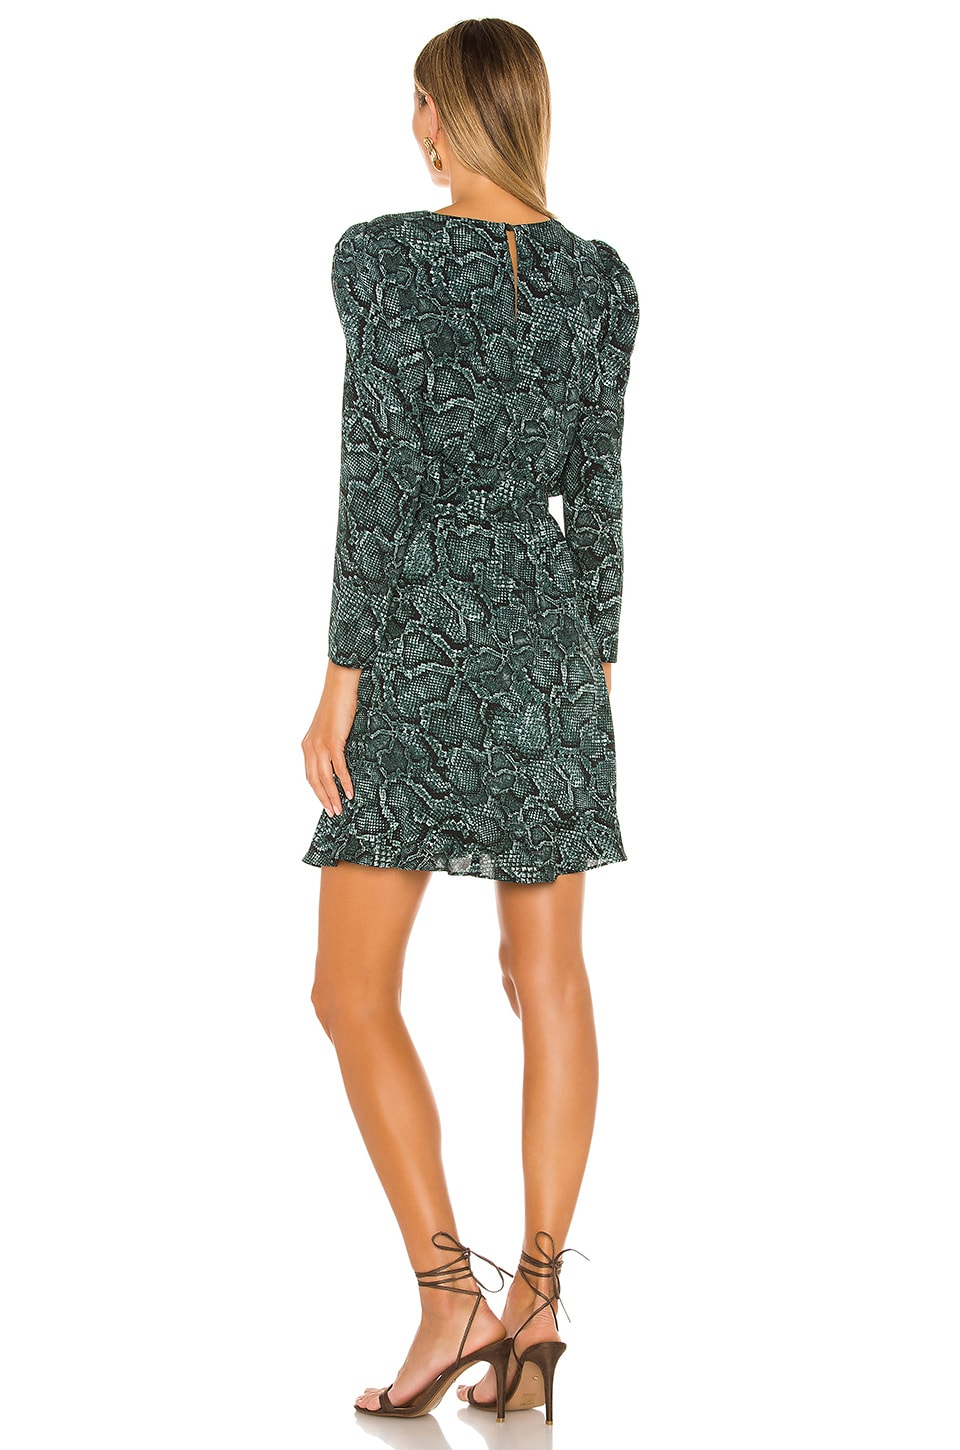 Tie Waist Snake Print Dress, view 3, click to view large image.